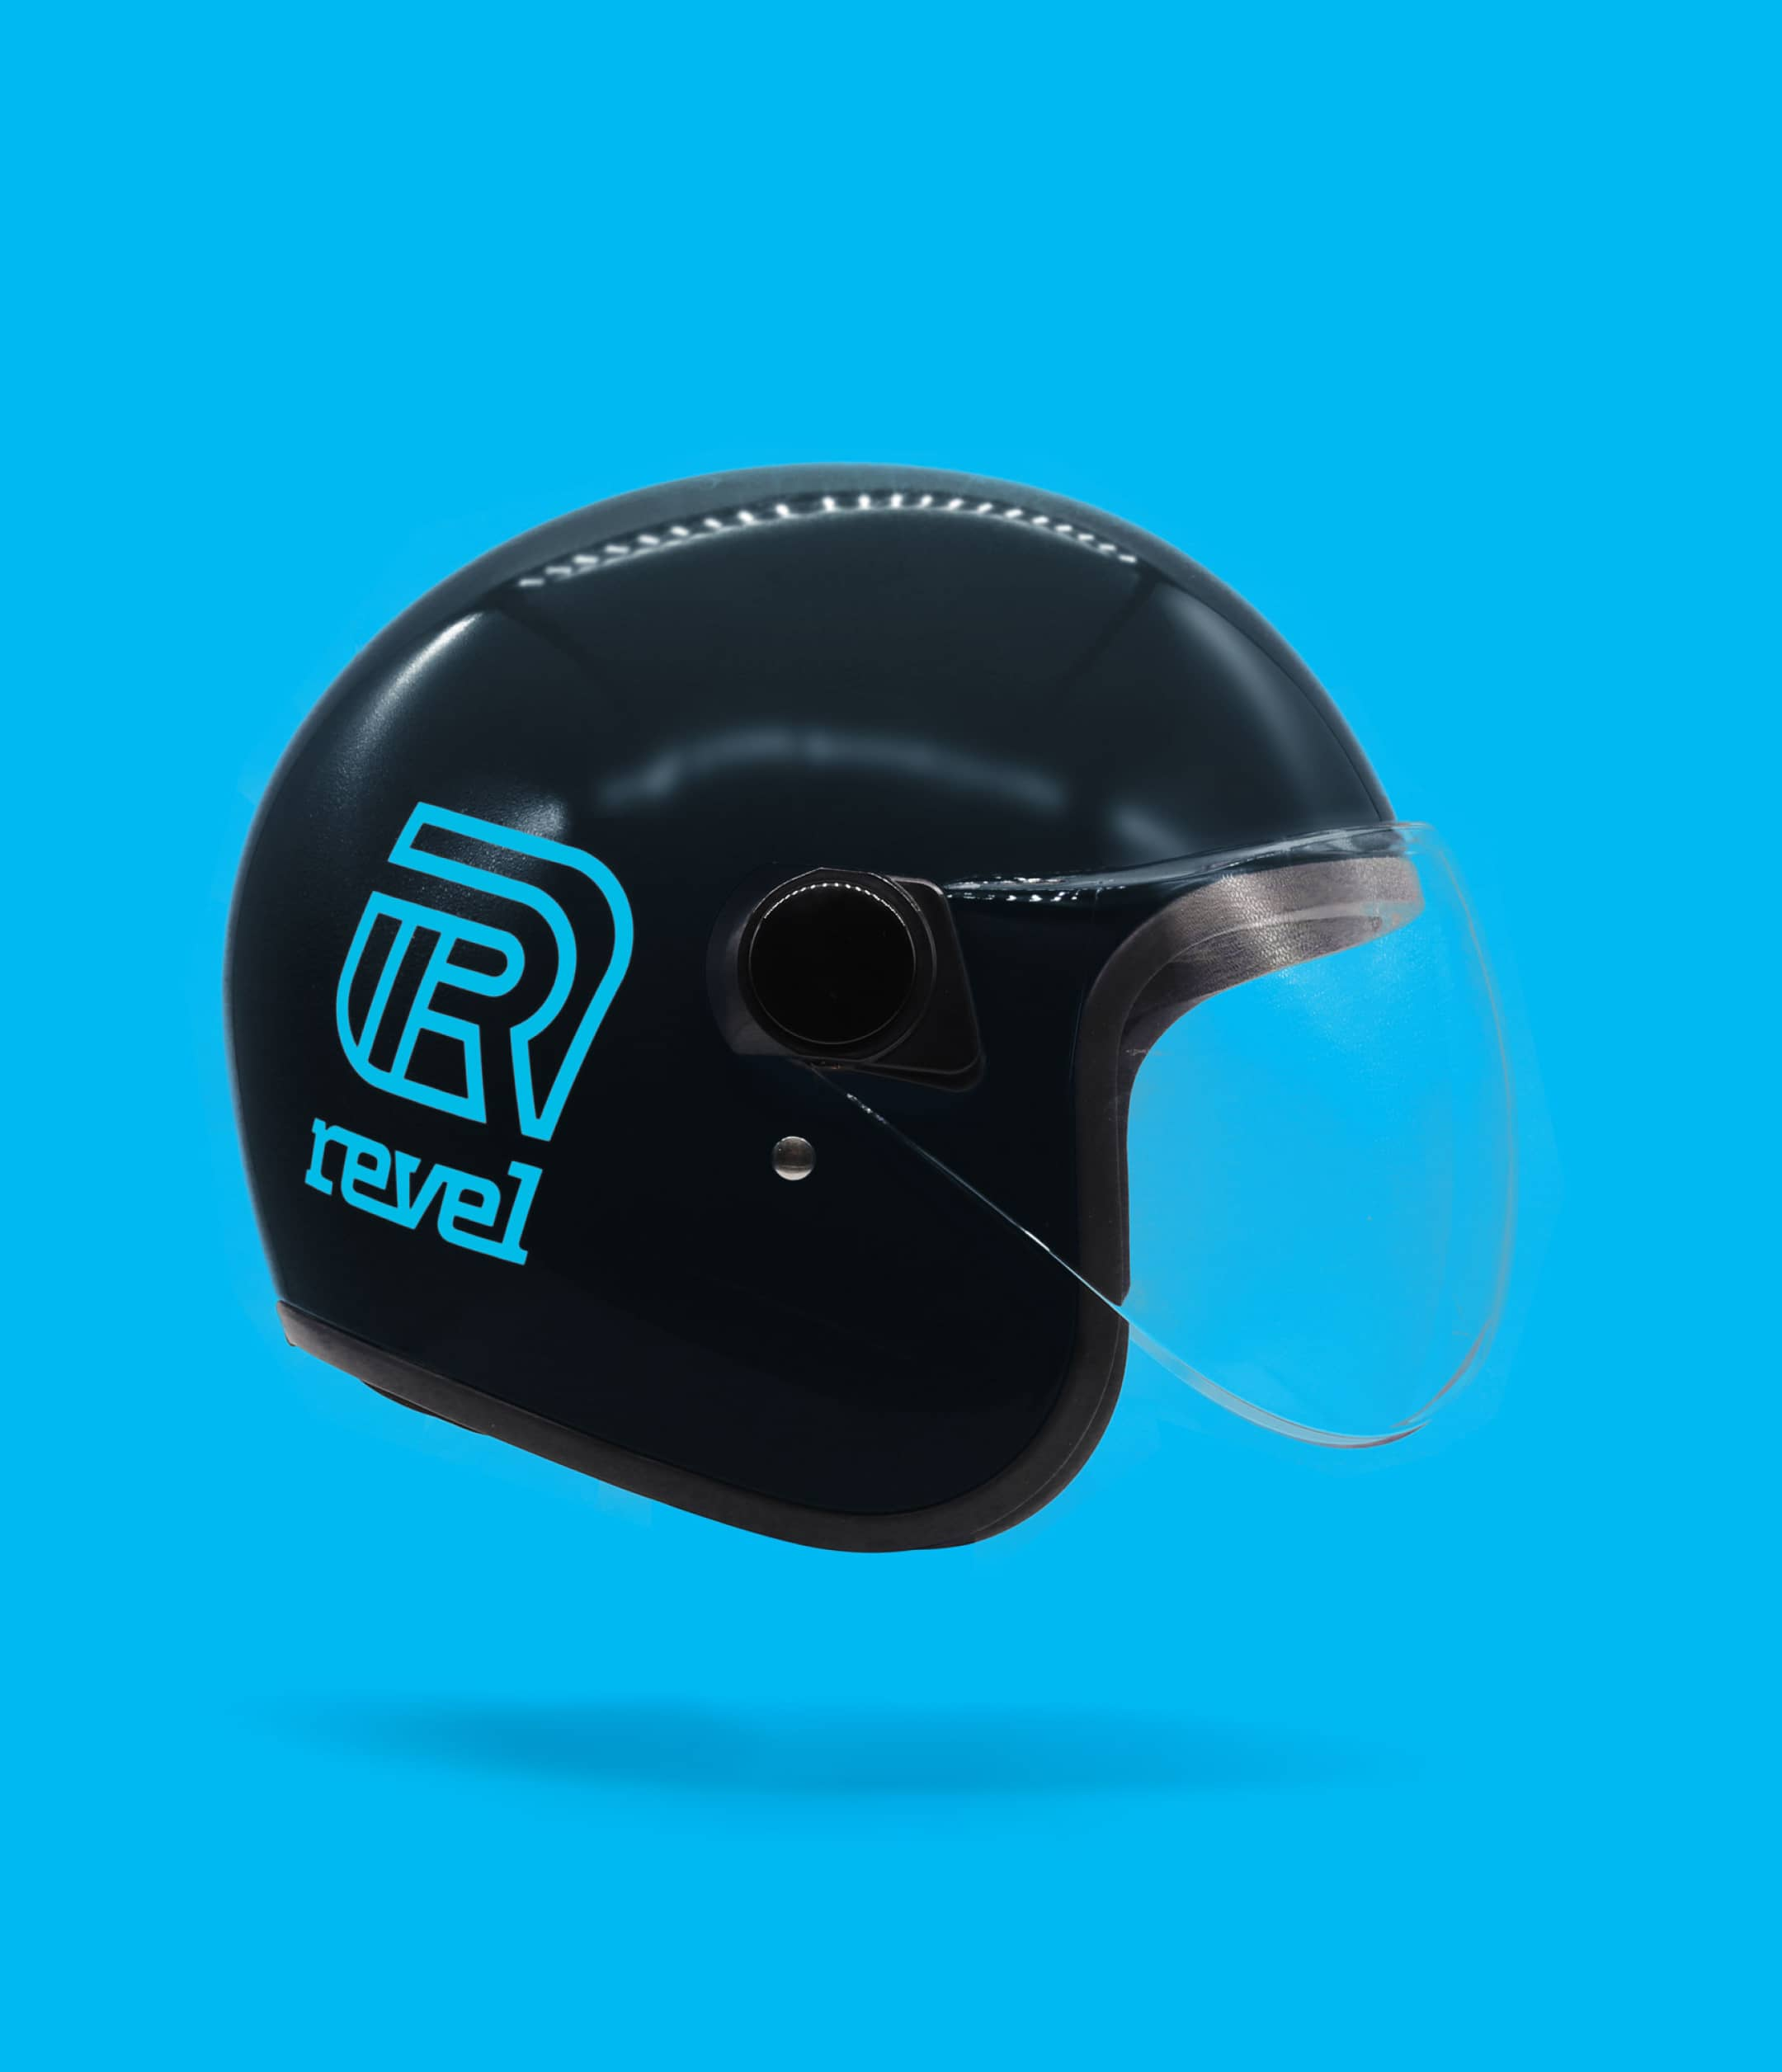 phone of a revel helmet